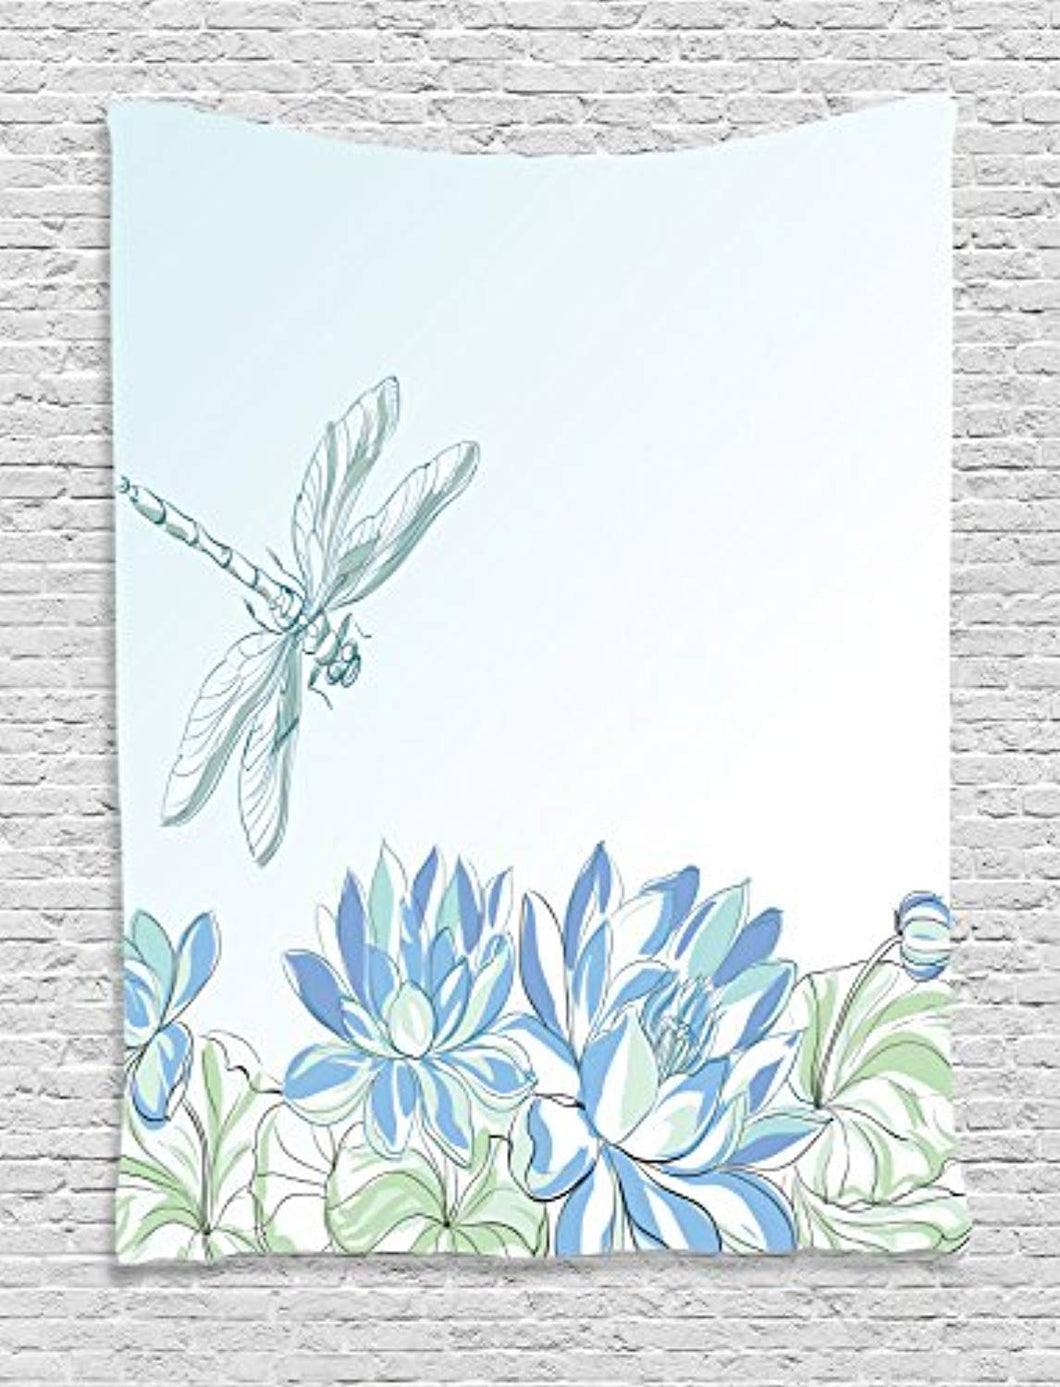 Dragonfly And Water Lillie's Décor Tapestry